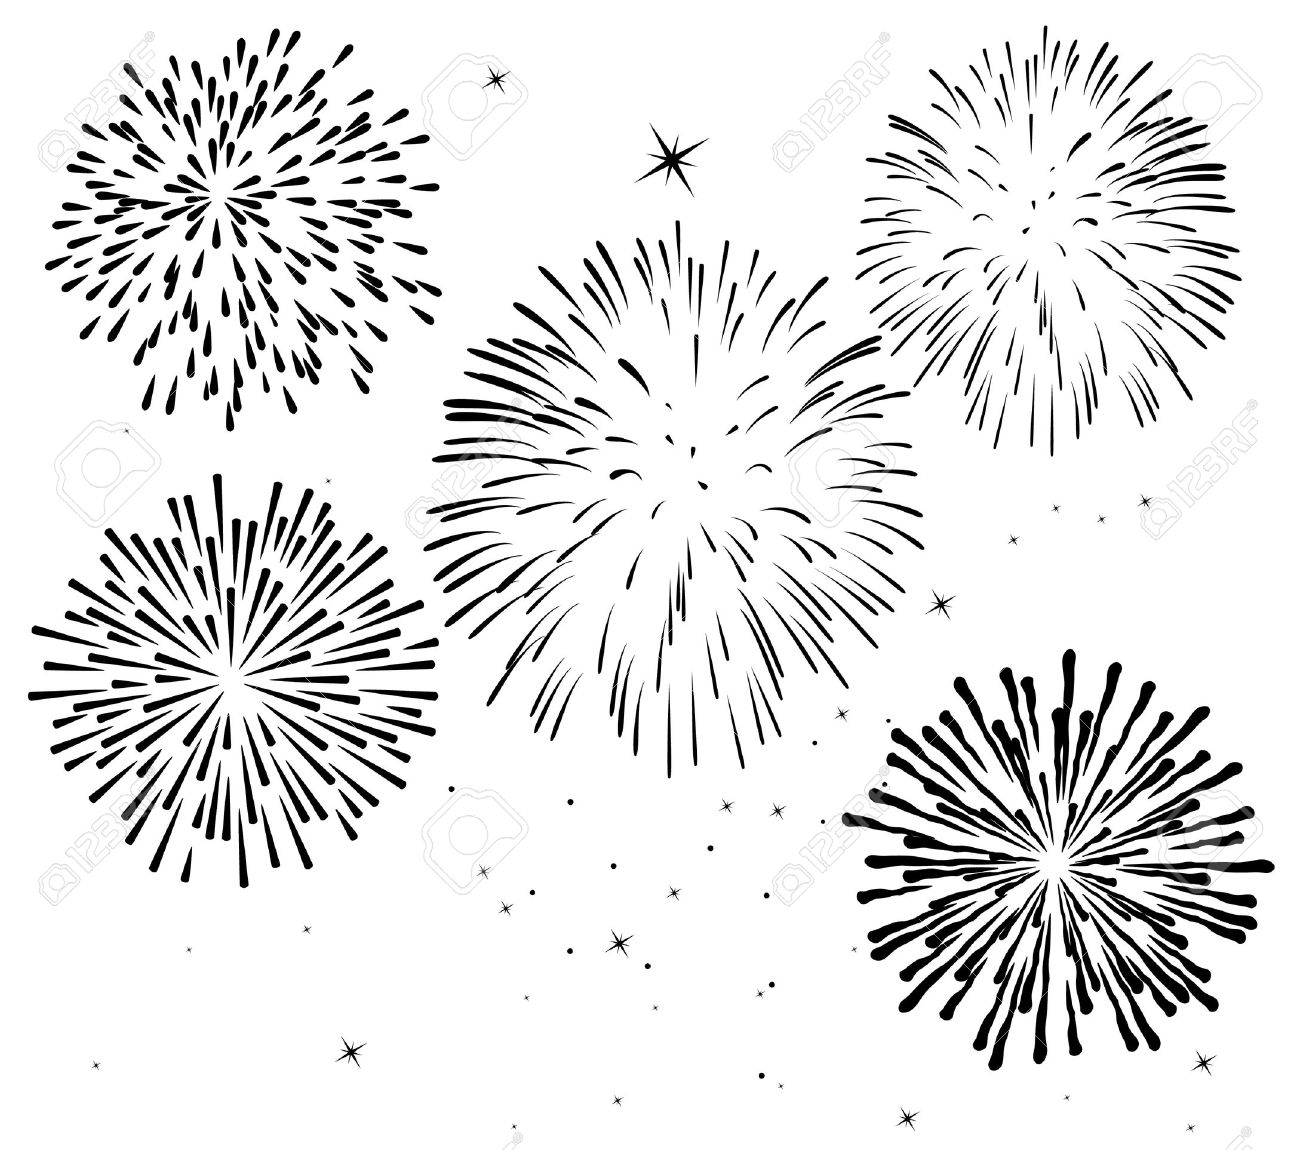 Black and white fireworks background royalty free cliparts vectors black and white fireworks background stock vector 6780885 voltagebd Image collections